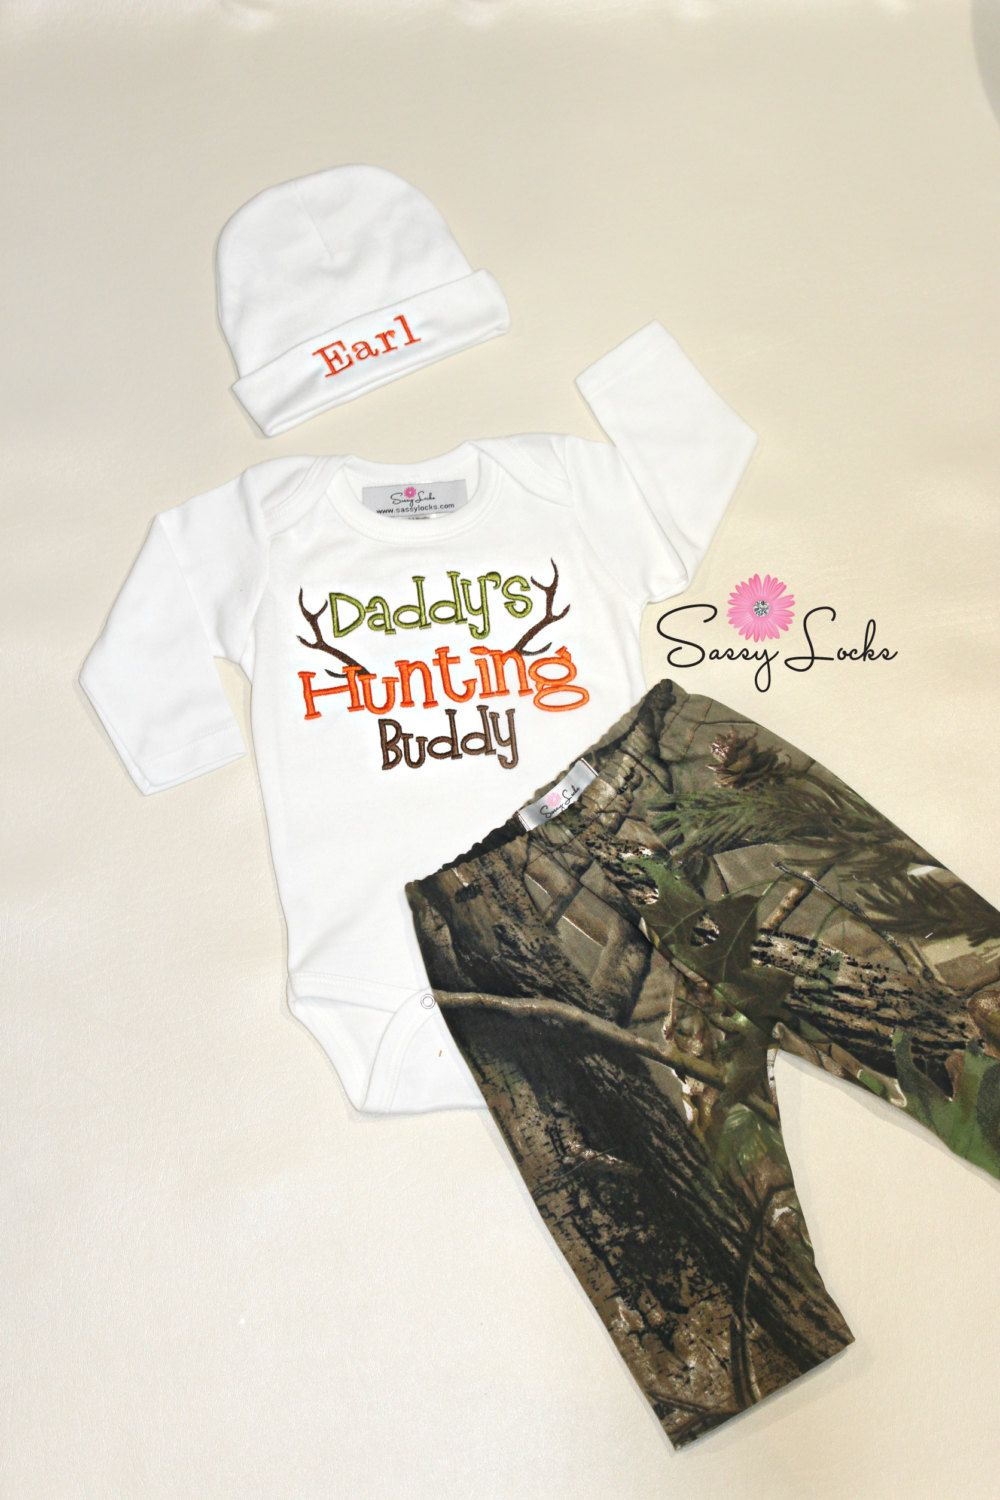 b5ebff18c Baby Deer Hunting Baby Boy Newborn Take Home Outfit Stag Hunting Baby  Outfit Hunters Camo Outfit